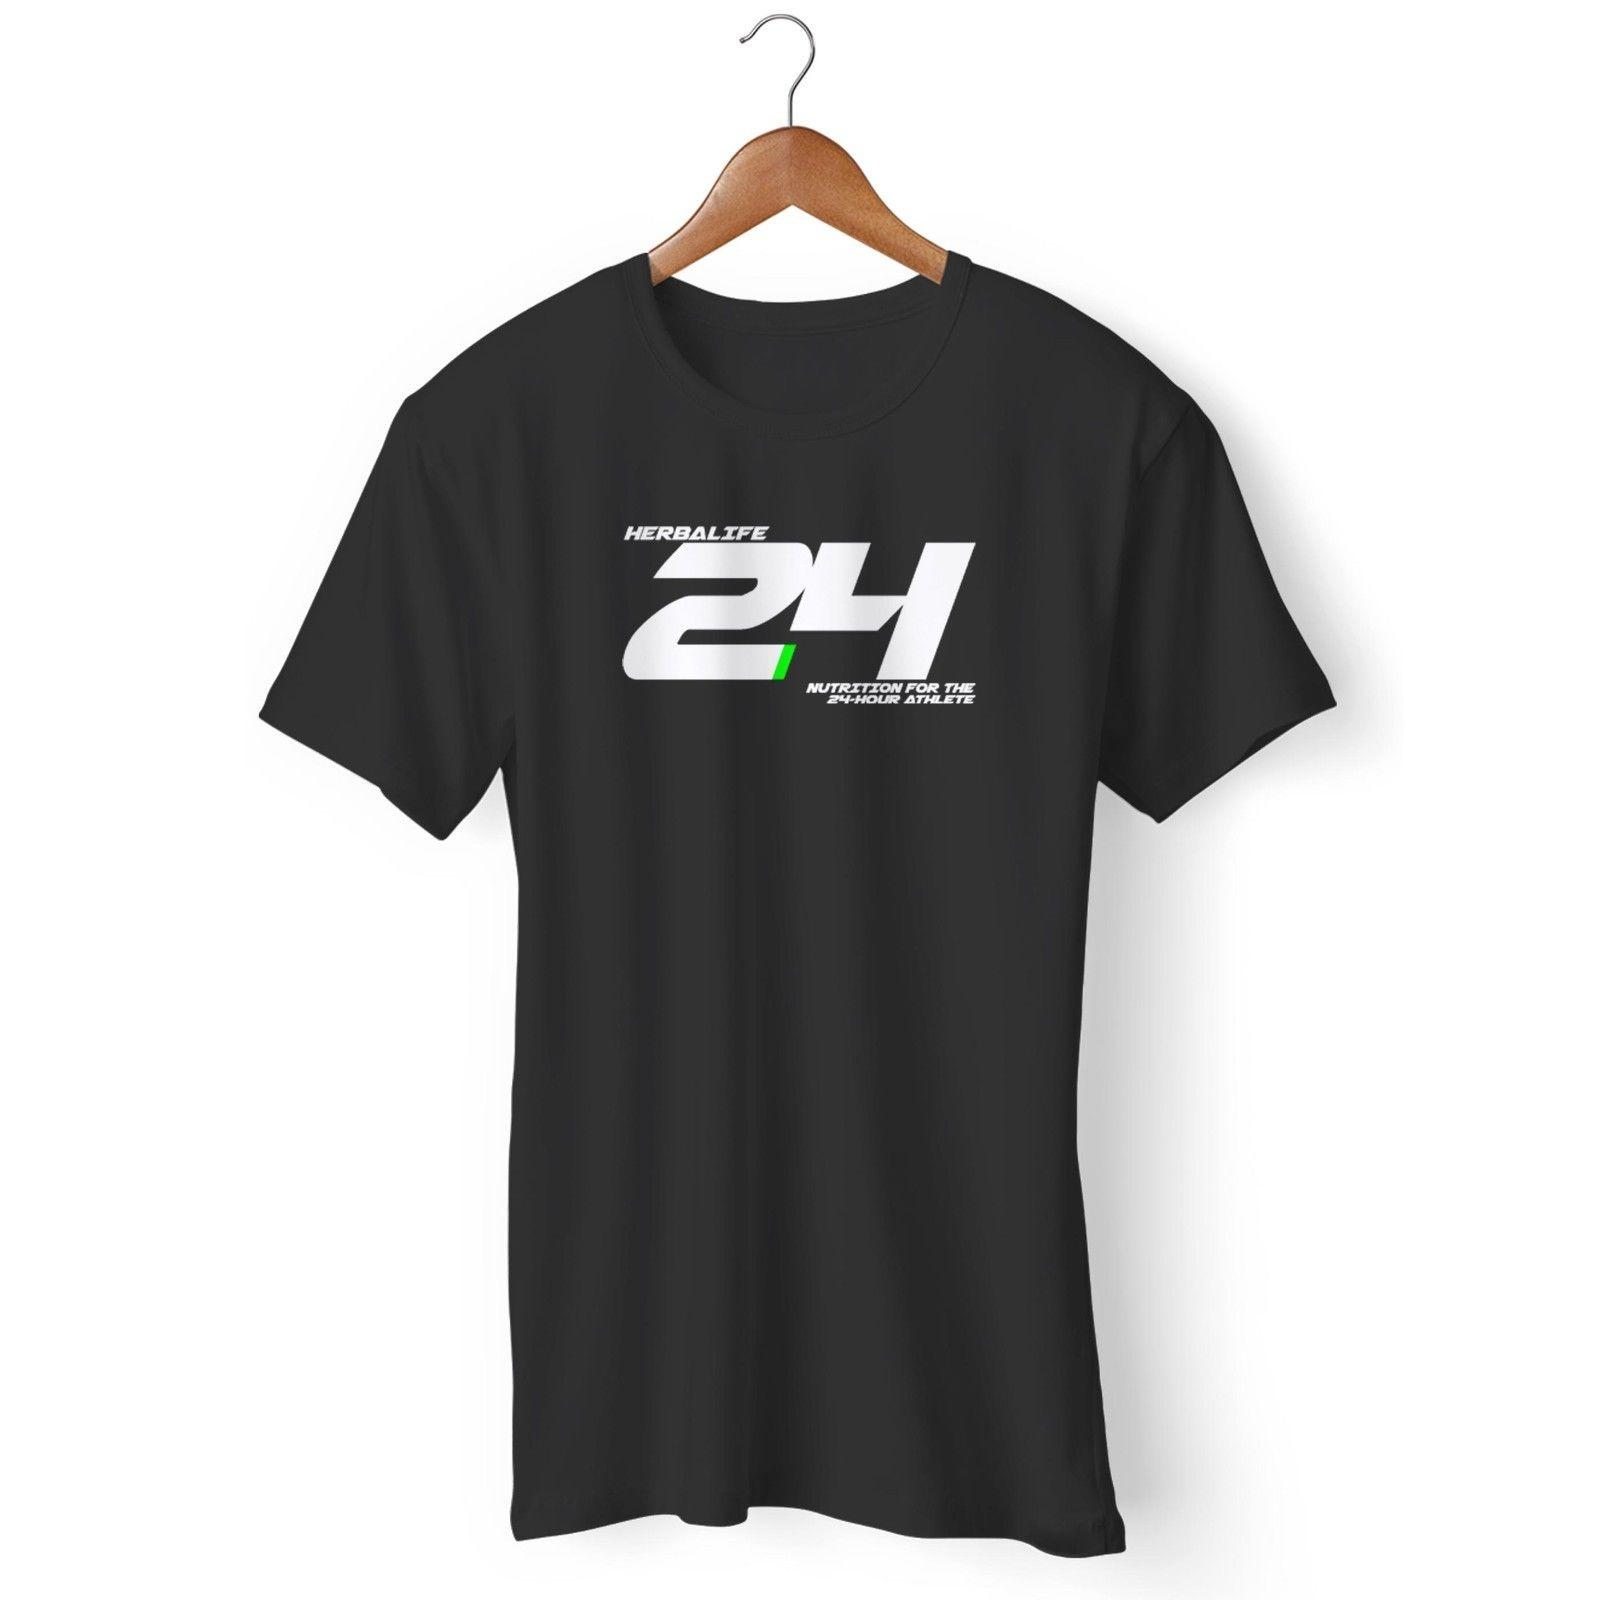 58878a648 Herbalife 24 Herbalife Nutrition Man S And Woman S T Shirt Buy Tshirt  Political Shirts From Beidhgate01